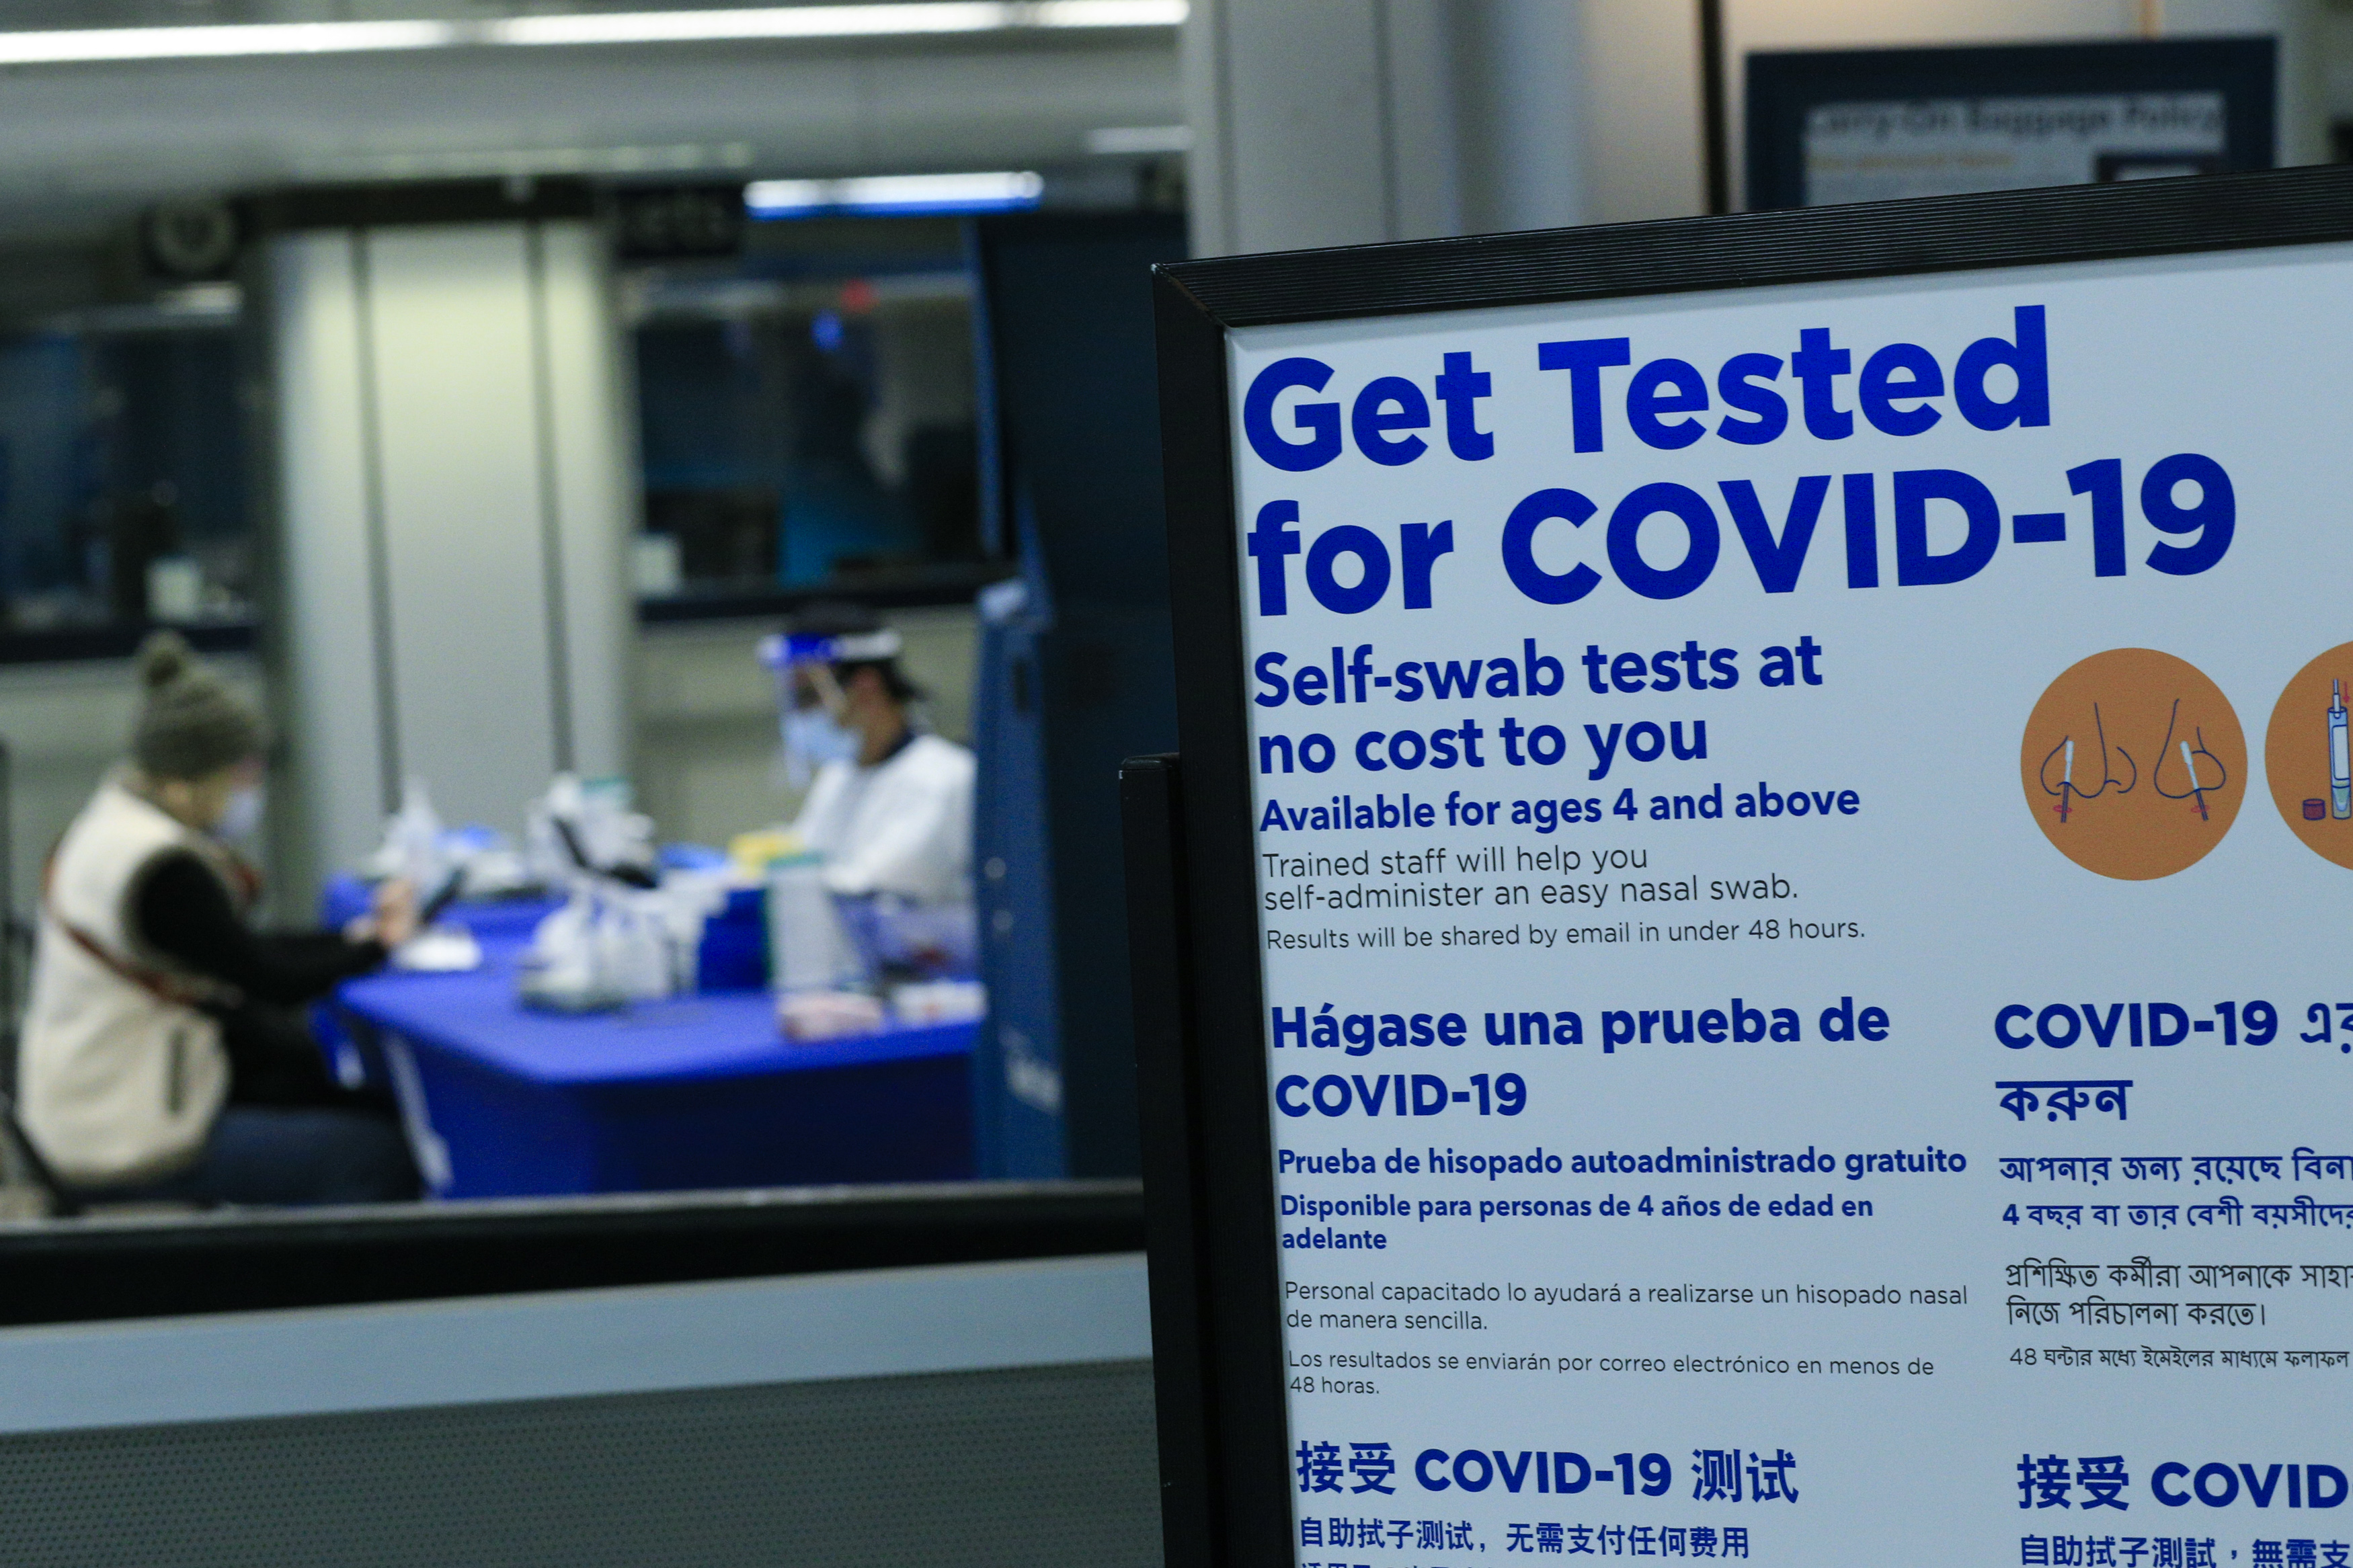 The latest: COVID-19 outbreak worldwide (Updated December 6)